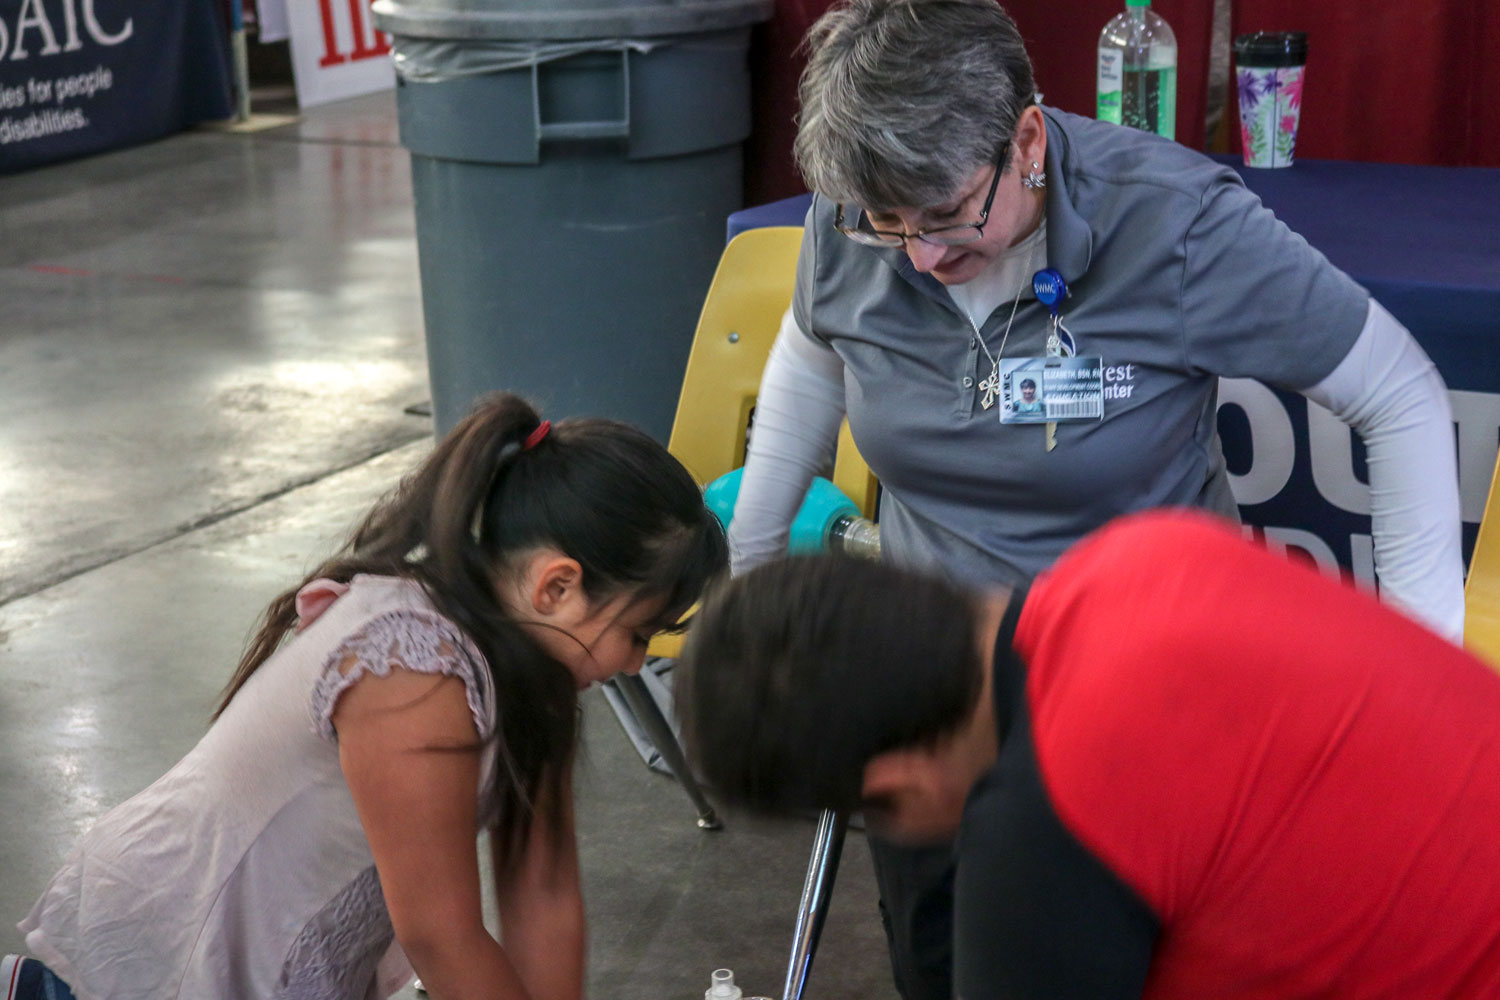 Elizabeth Irby, CPR/First Aid teacher of SWMC, has a couple of kids race each other doing CPR at the Community Health Fair.